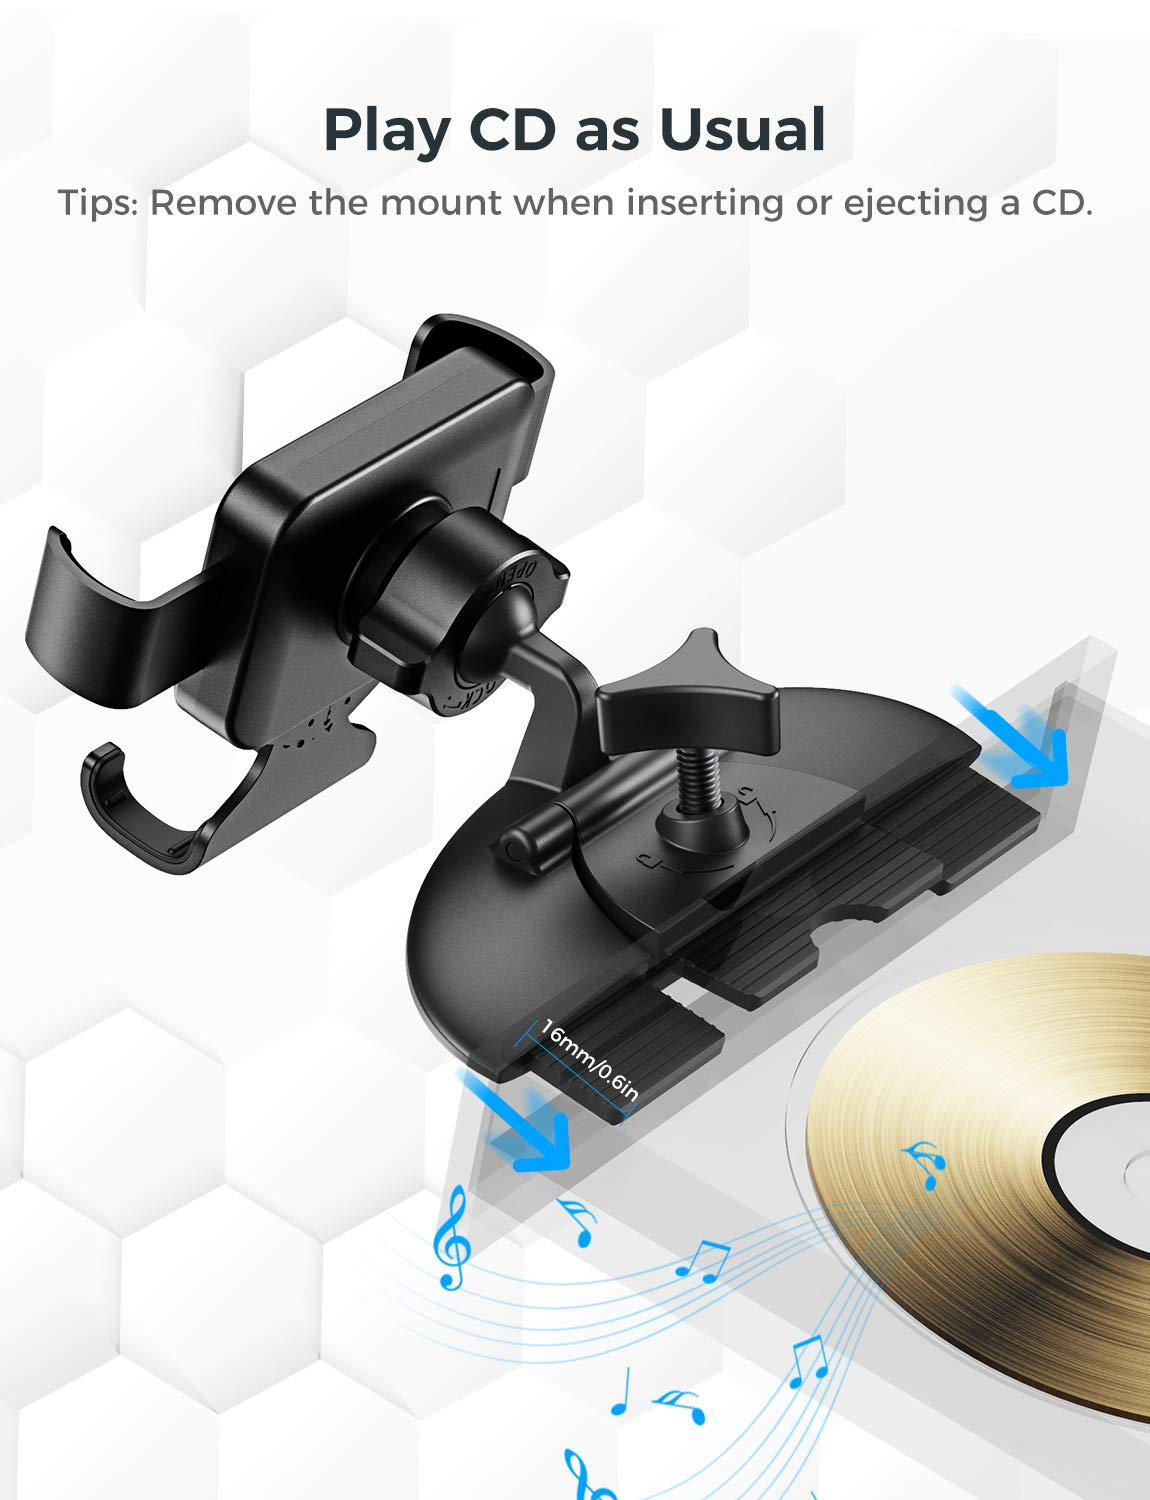 Gravity Car Mount Auto Lock and Auto Release CD Slot Phone Holder Mpow Car Phone Mount One-Handed Operation Car Phone Holder Compatible with iPhone 11 11 Pro Xs Max XR Galaxy S10 S10+ S10e S9 More